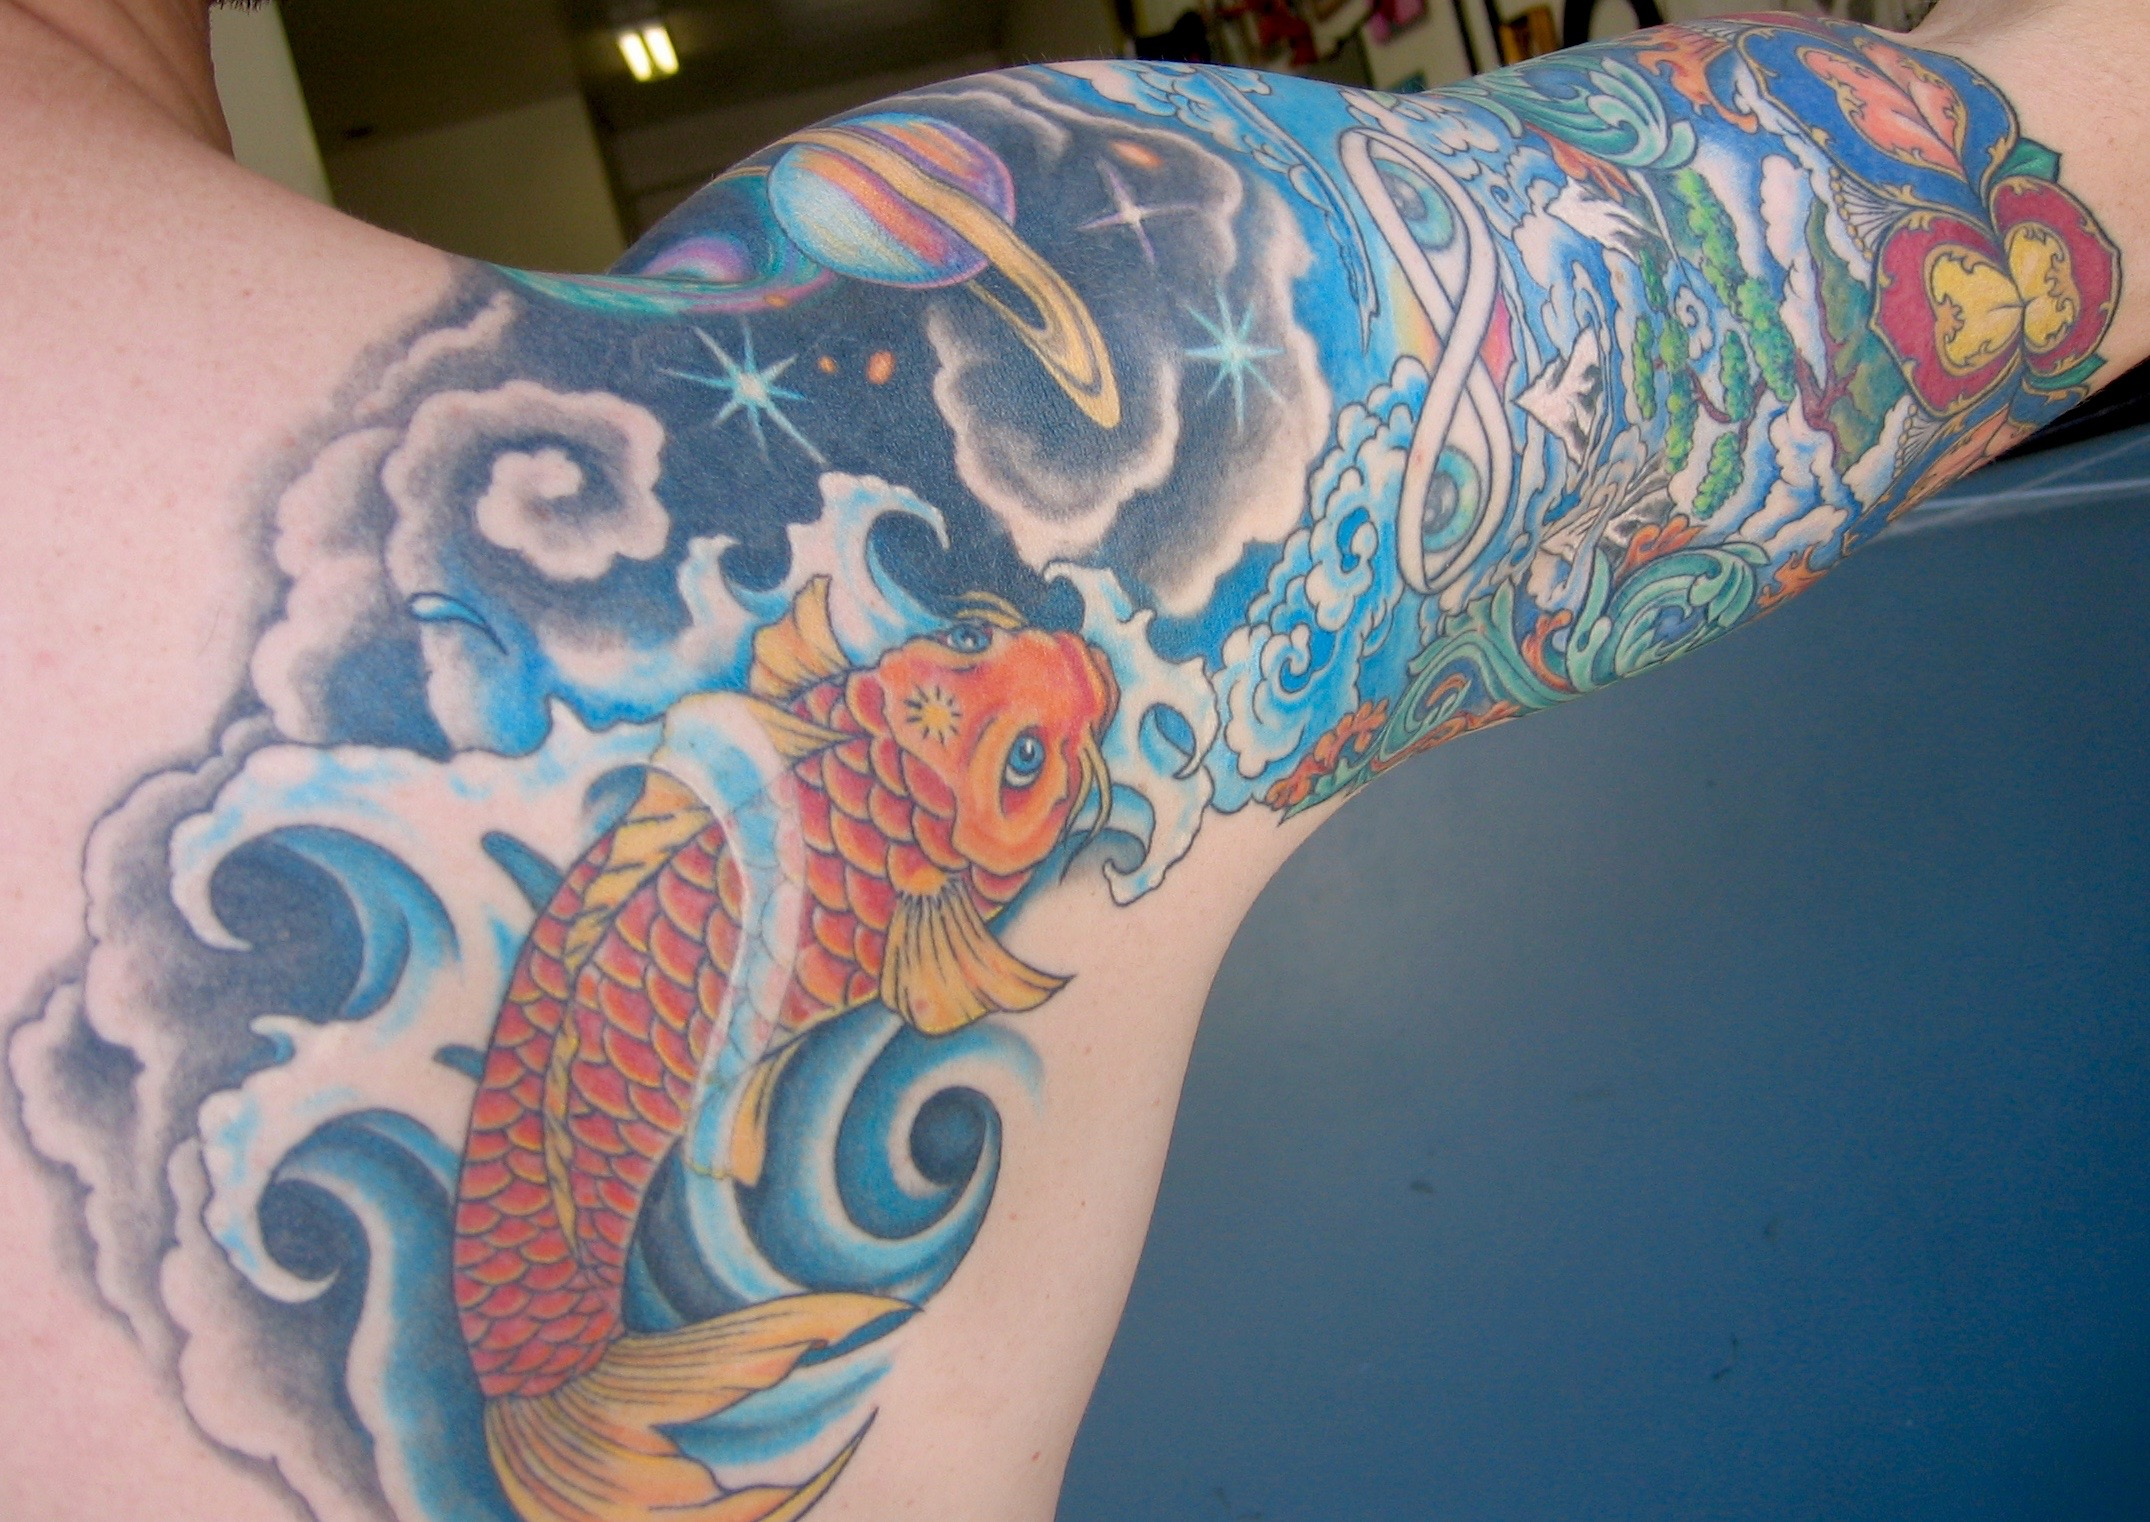 Cosmic Koi Sleeve, Karina Mayorga